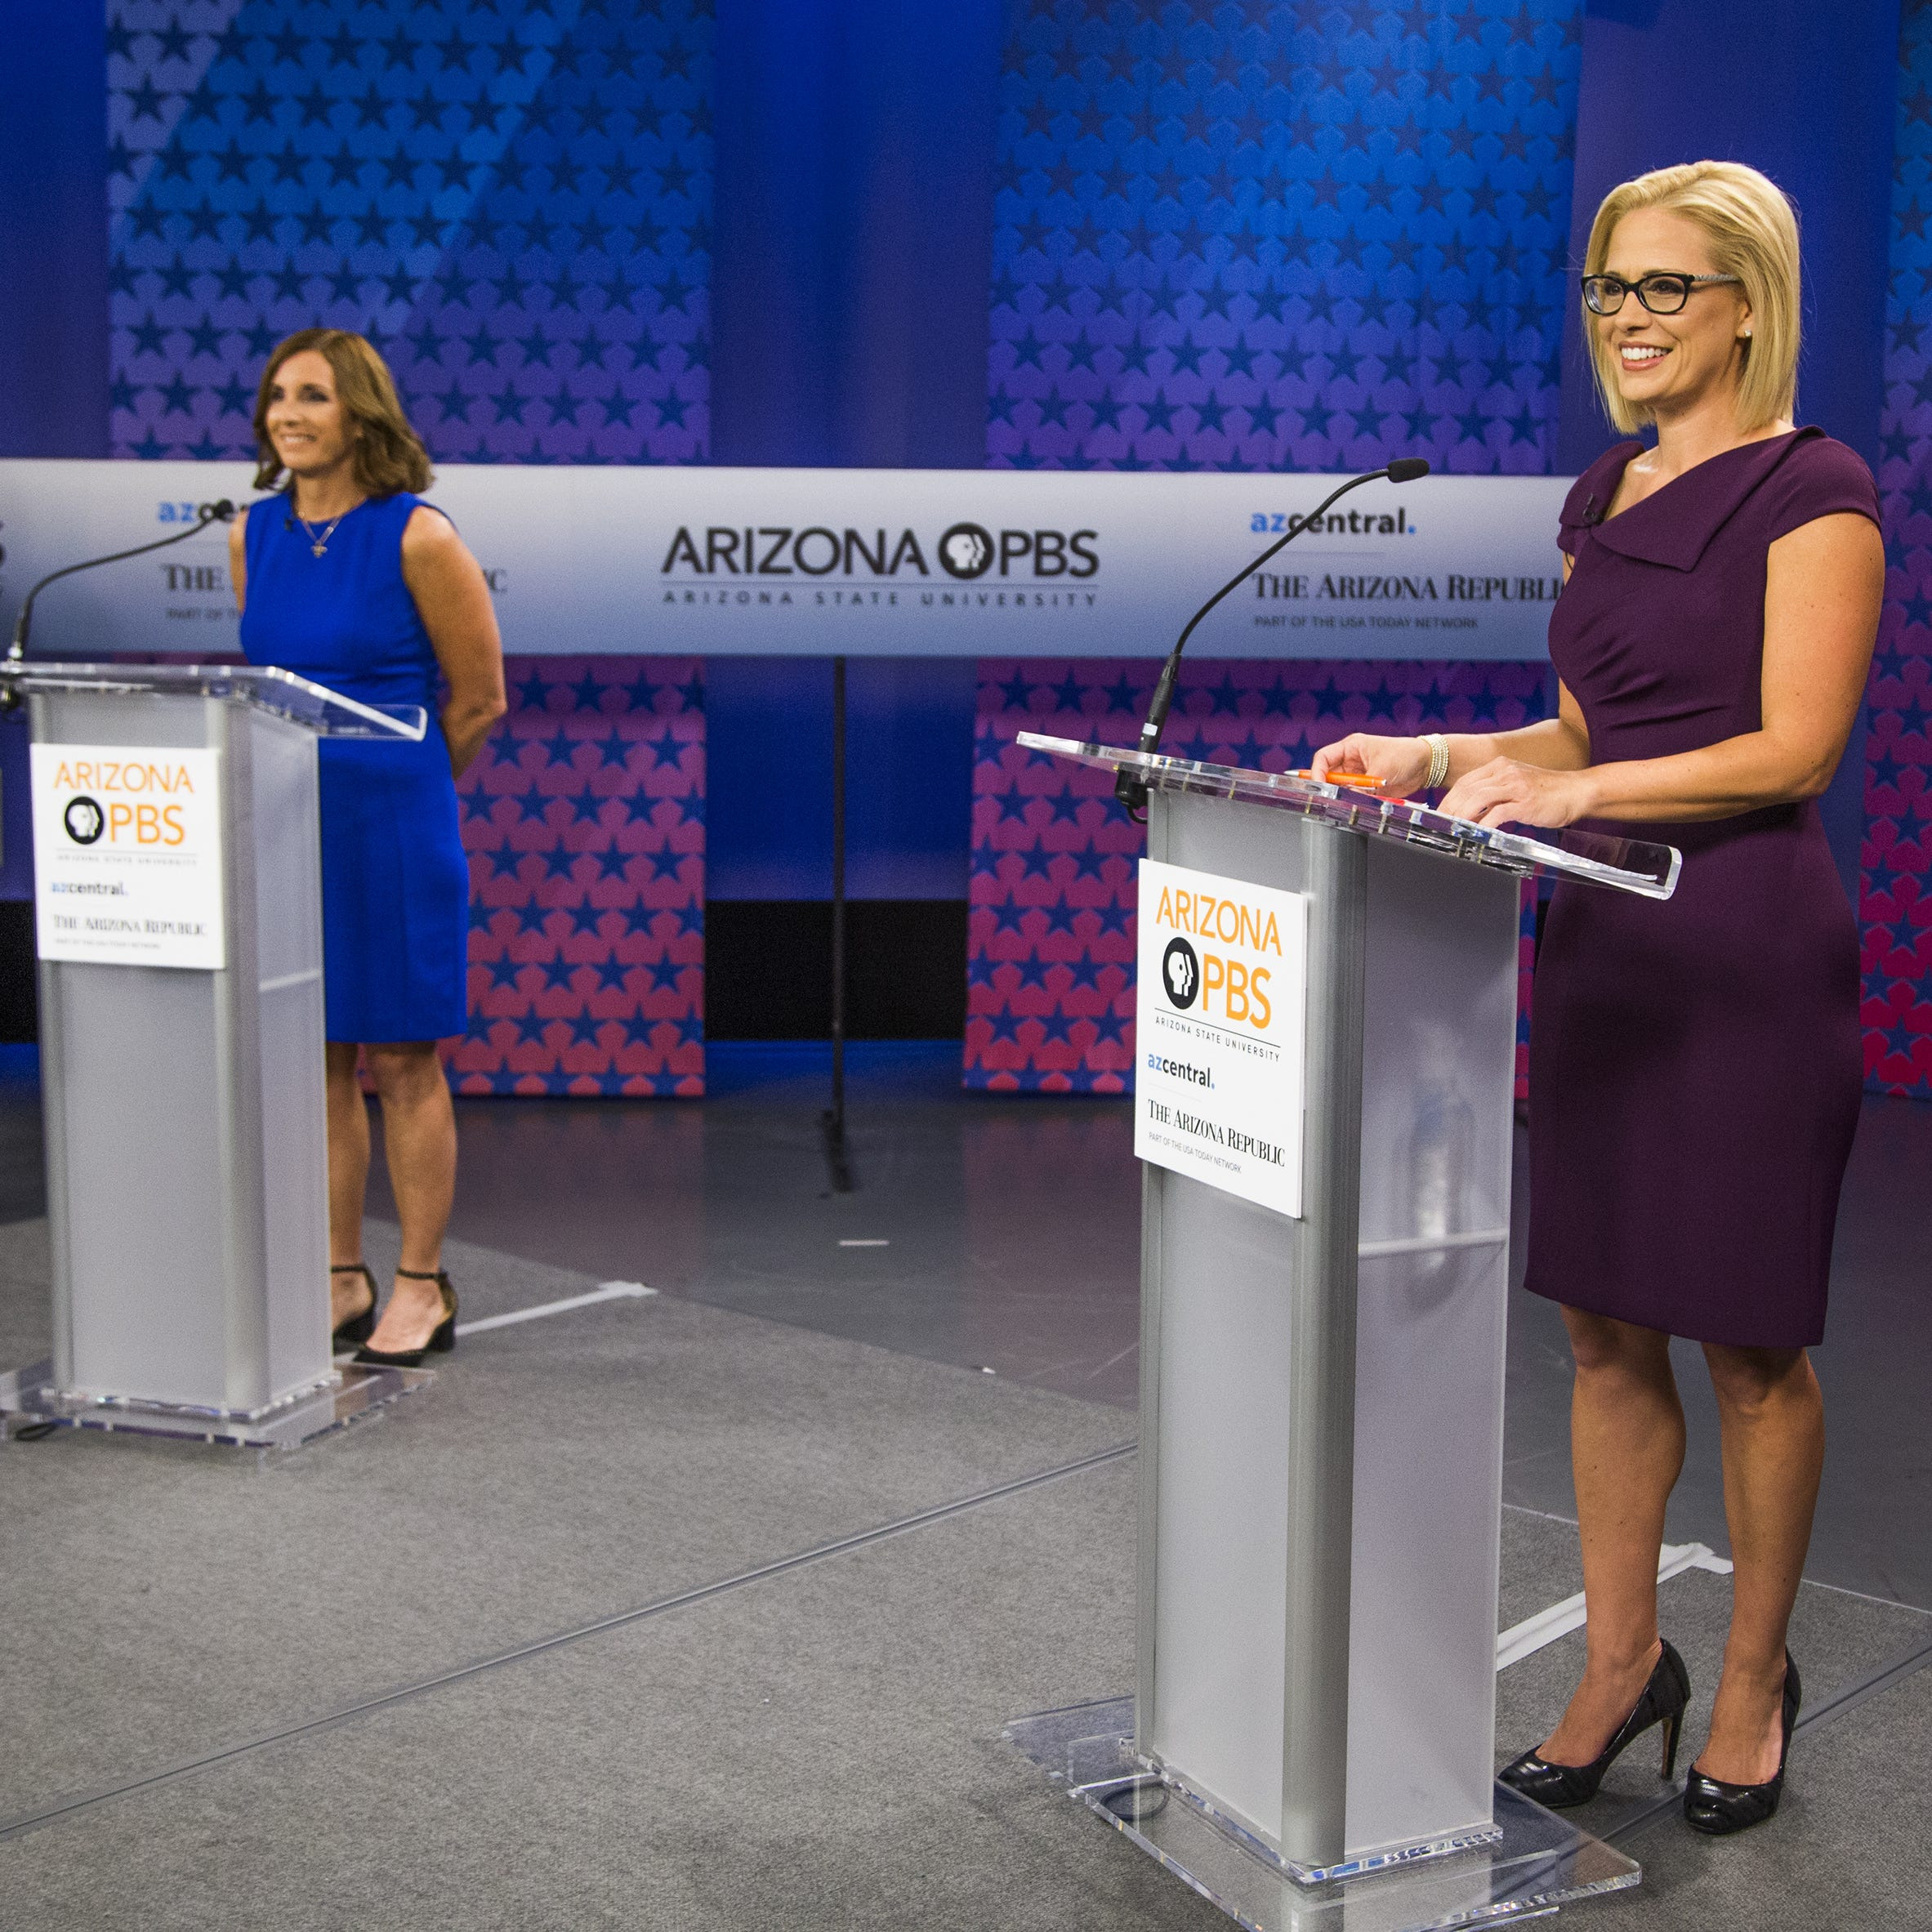 McSally, Sinema meet in the only debate in U.S. Senate race for Arizona seat